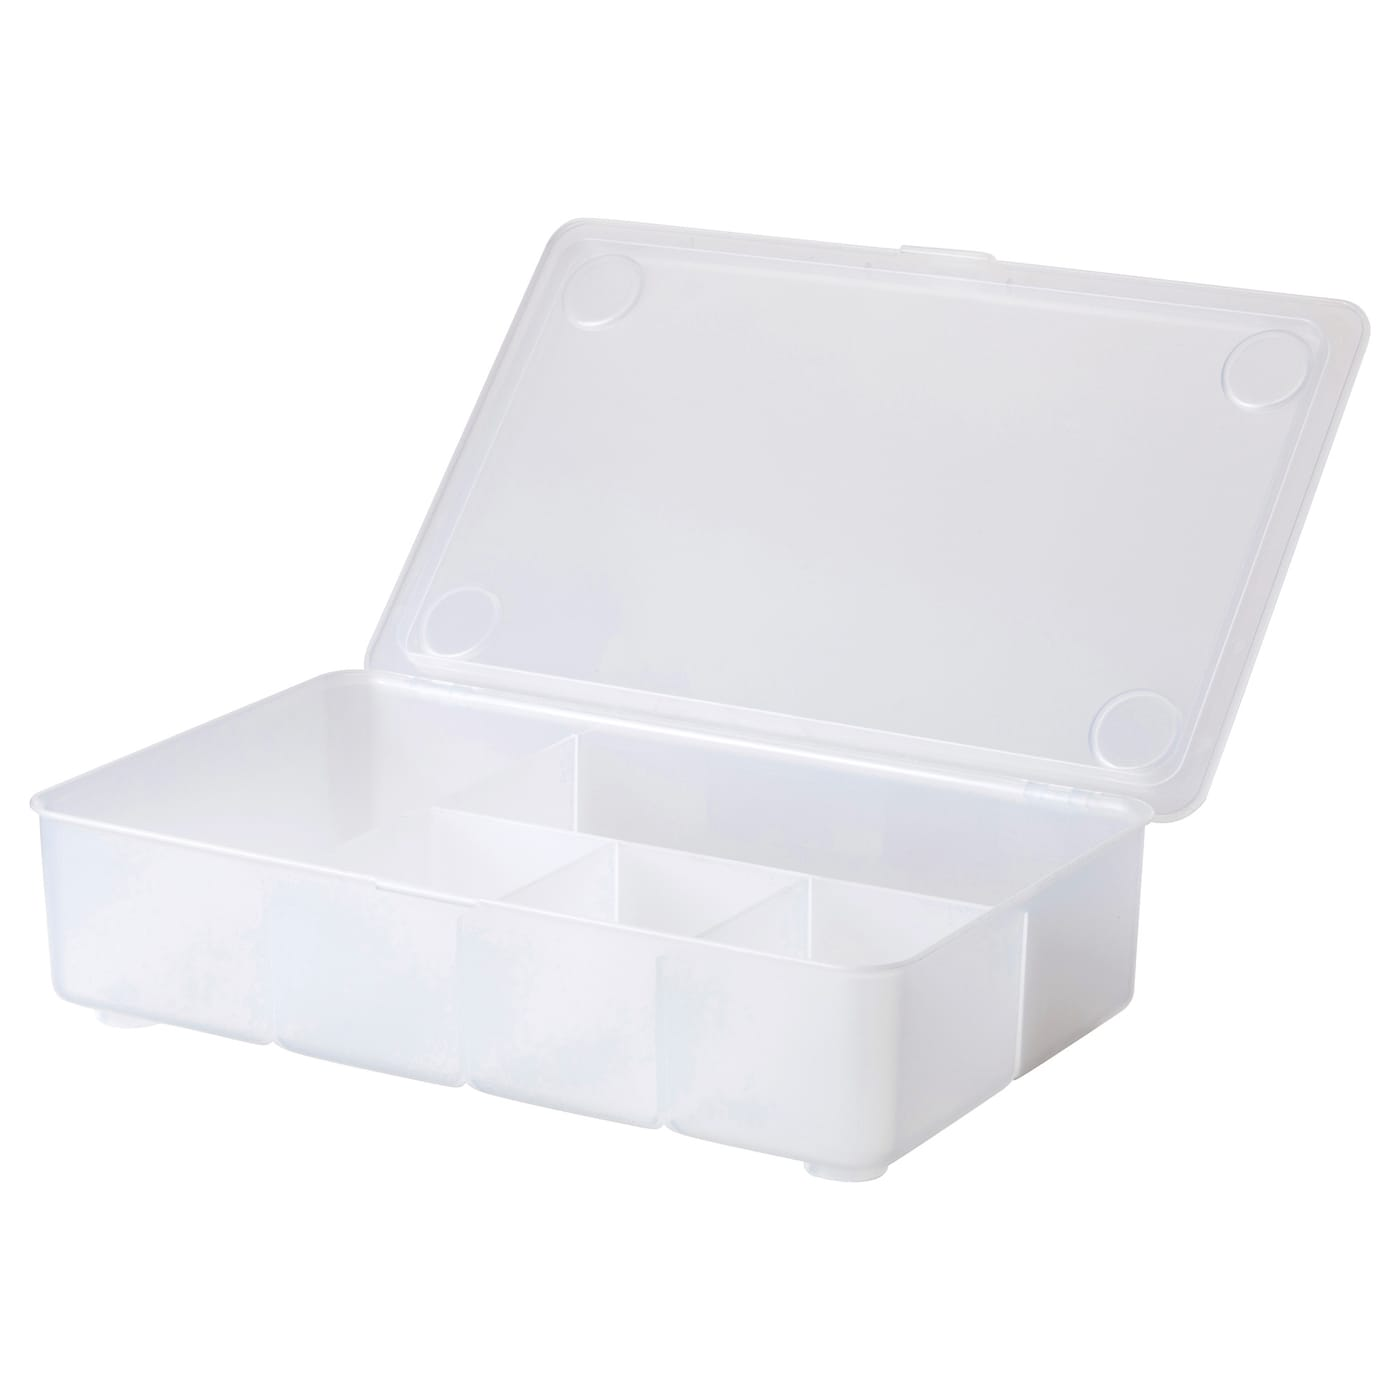 glis box with lid transparent 34 x 21 cm ikea. Black Bedroom Furniture Sets. Home Design Ideas